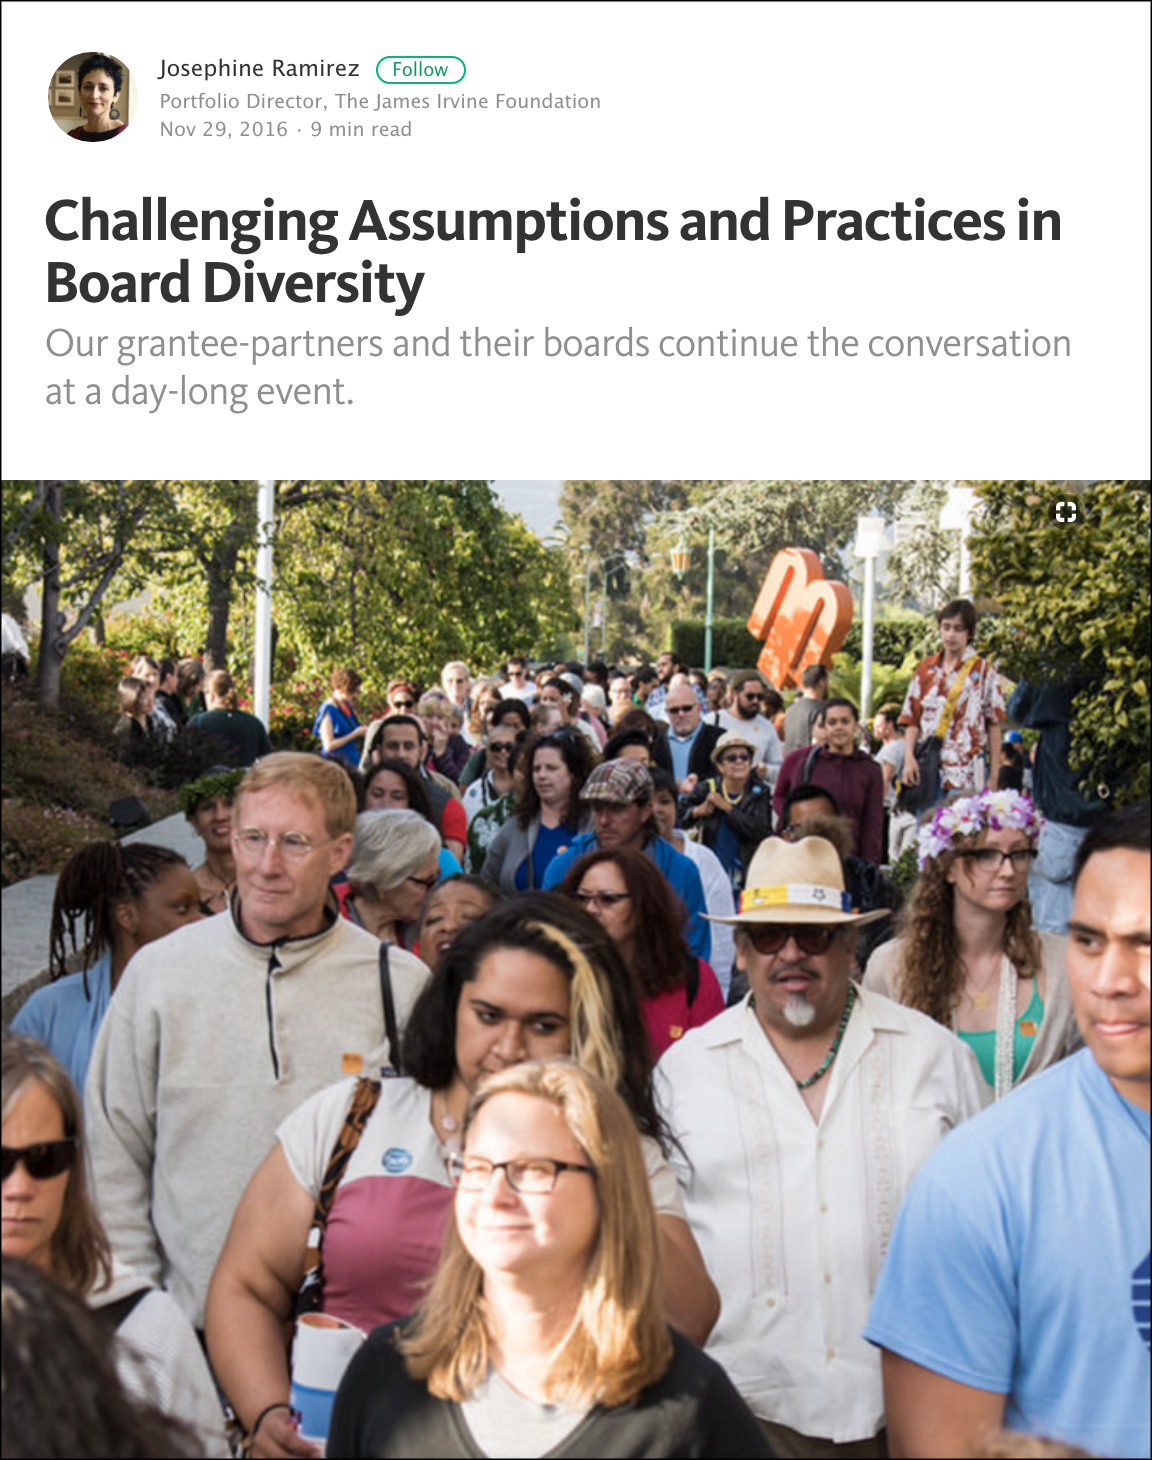 Challenging Assumptions and Practicing Board Diversity